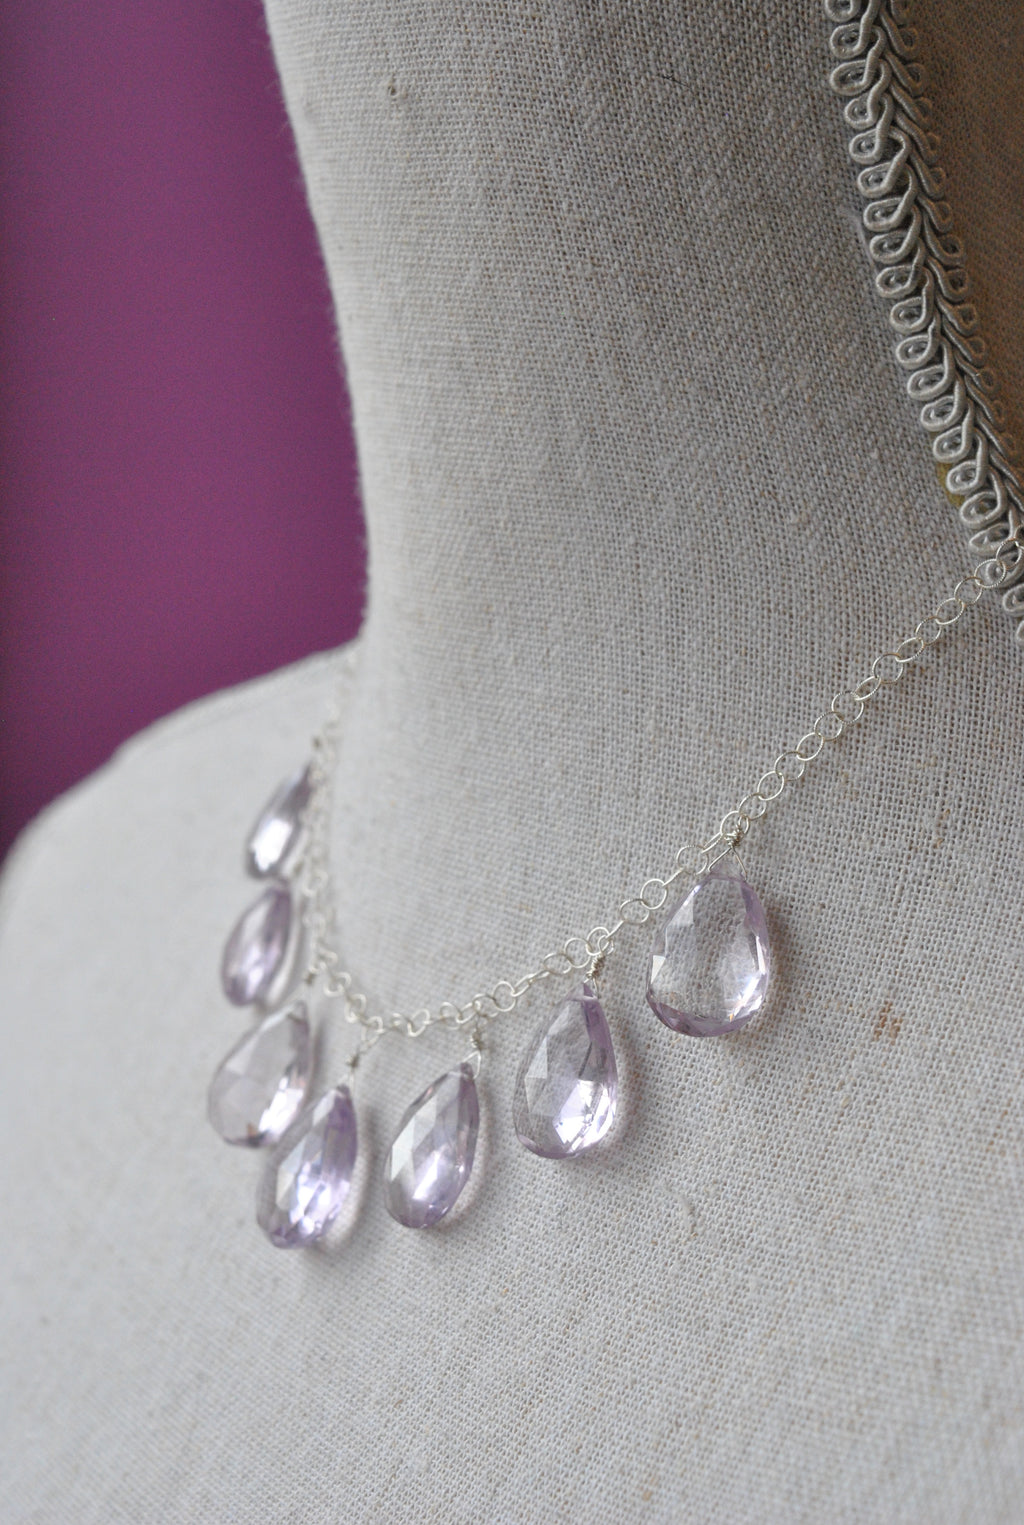 LAVENDER AMETHYST TEARDROPS CHARM STERLING SILVER NECKLACE